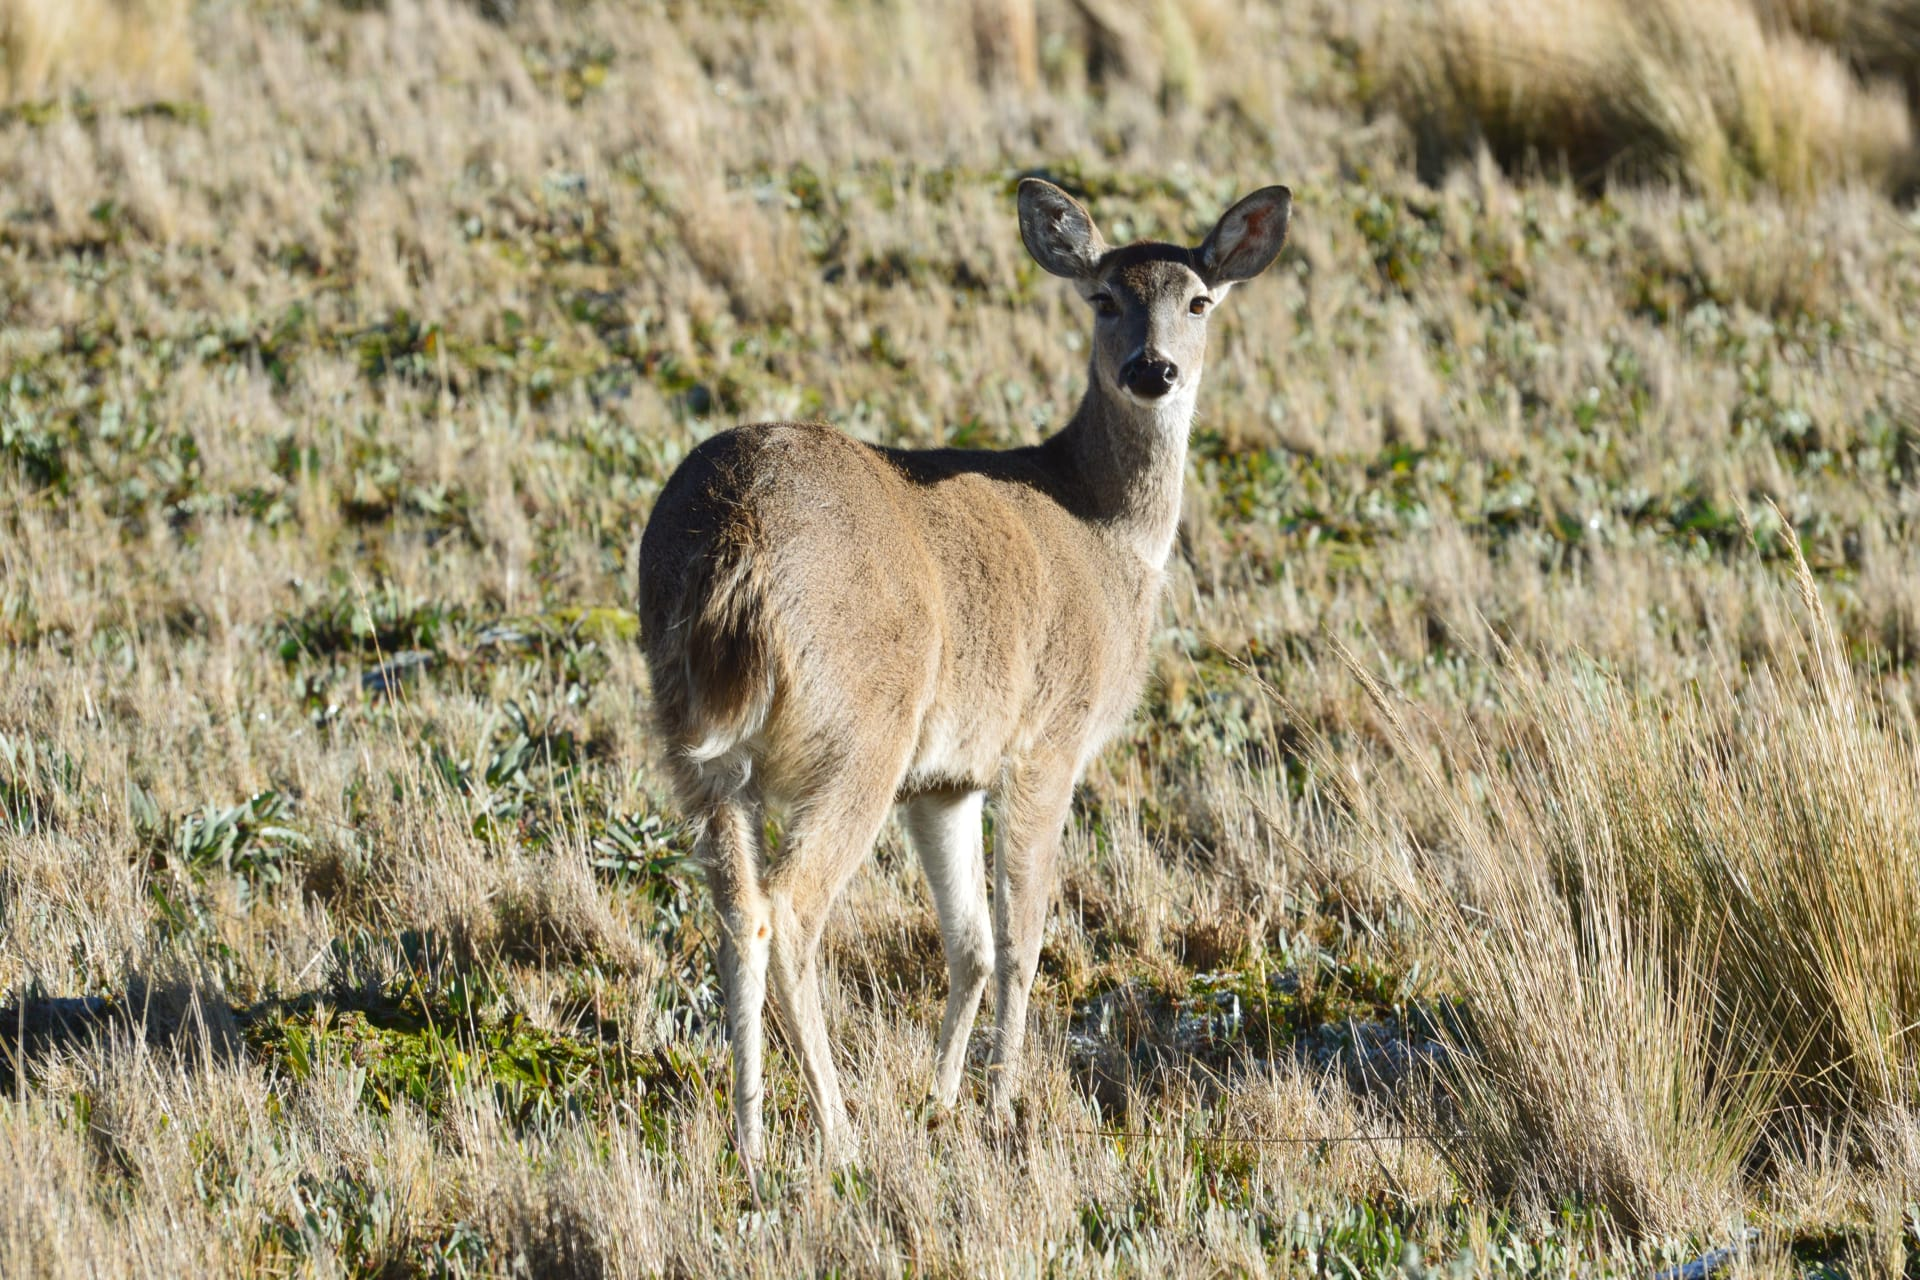 Otavalo - Let's Feed and Look at the White-tailed Deer